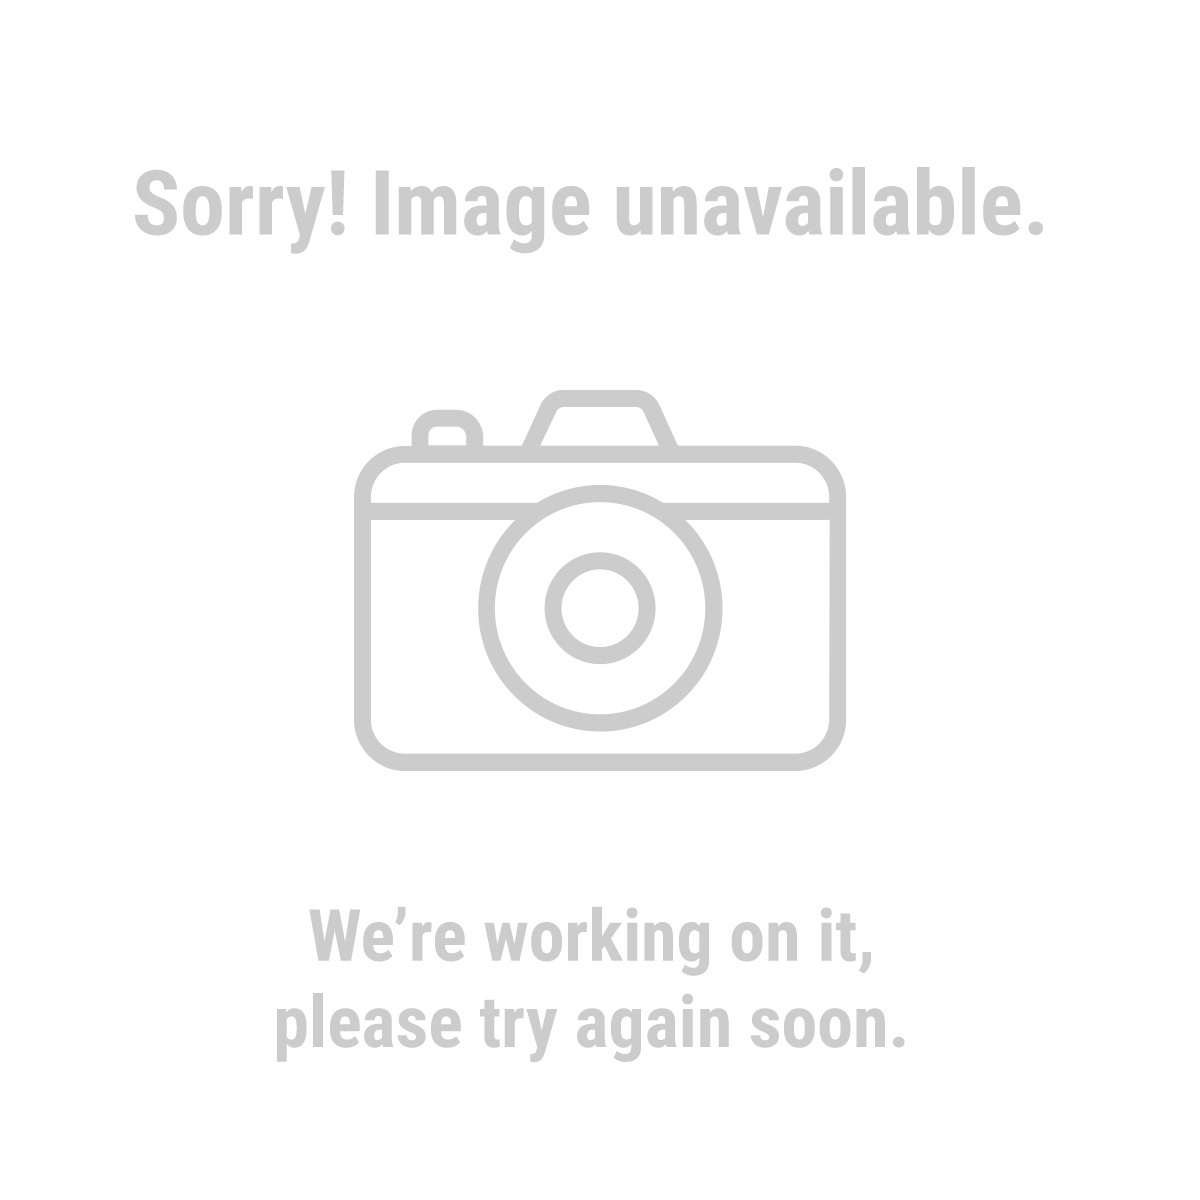 Chicago Electric Welding 62181 180 Amp-DC, 240 Volt, MIG/Flux Cored Welder